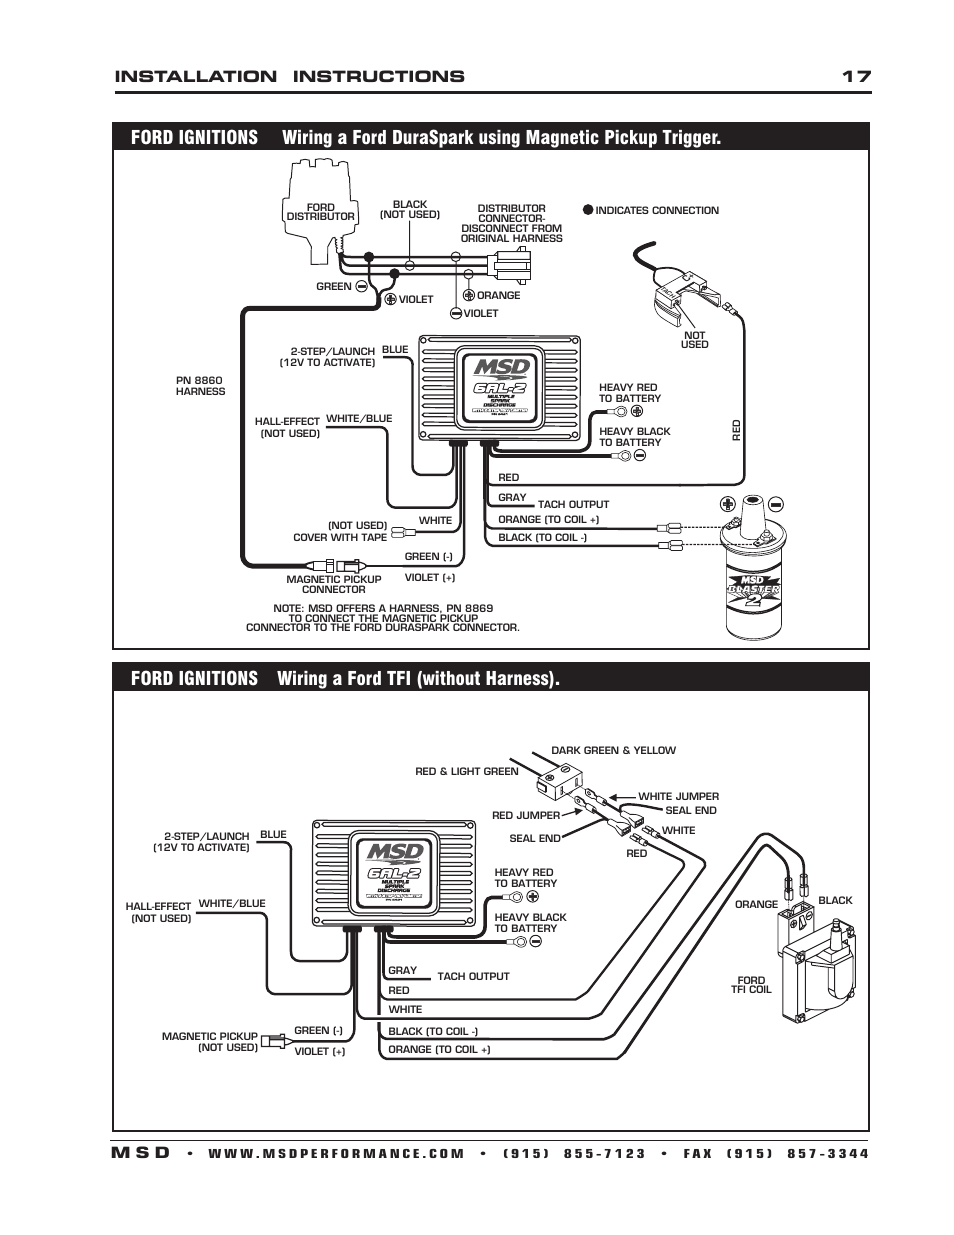 Old Fashioned Msd Street Fire Wiring Diagram Component - Wiring ...